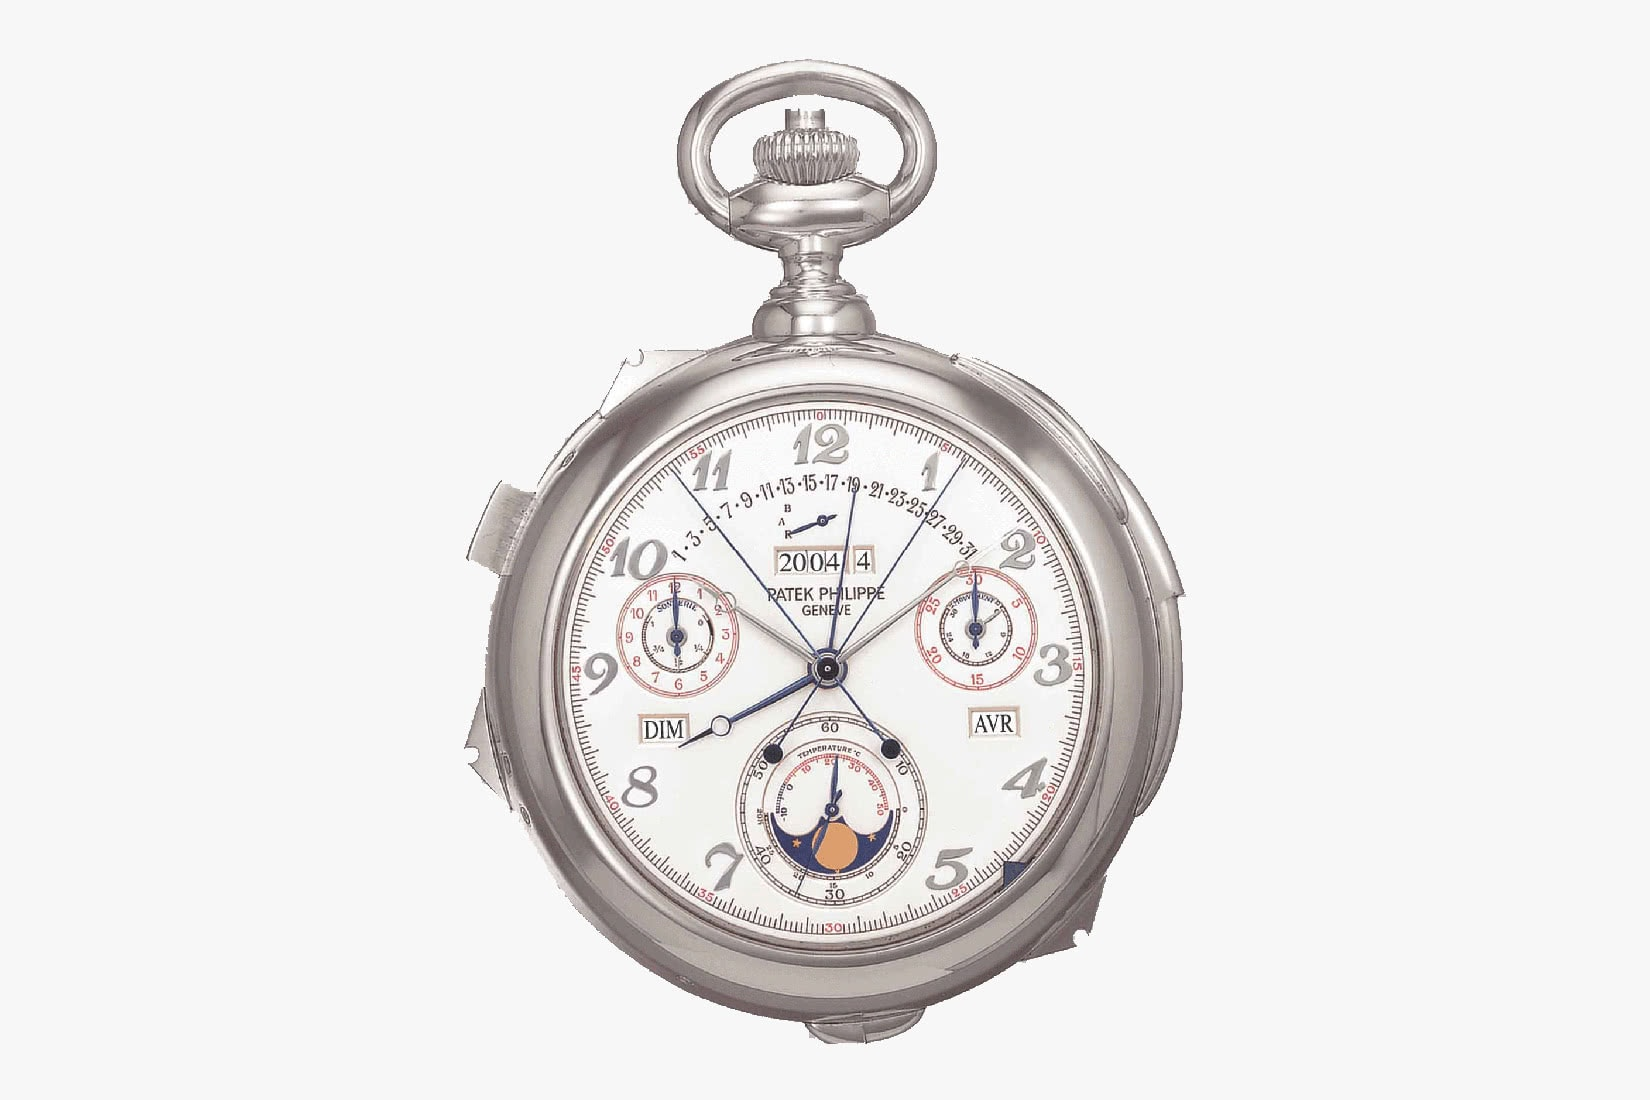 most expensive watches patek philippe white gold calibre 89 - Luxe Digital